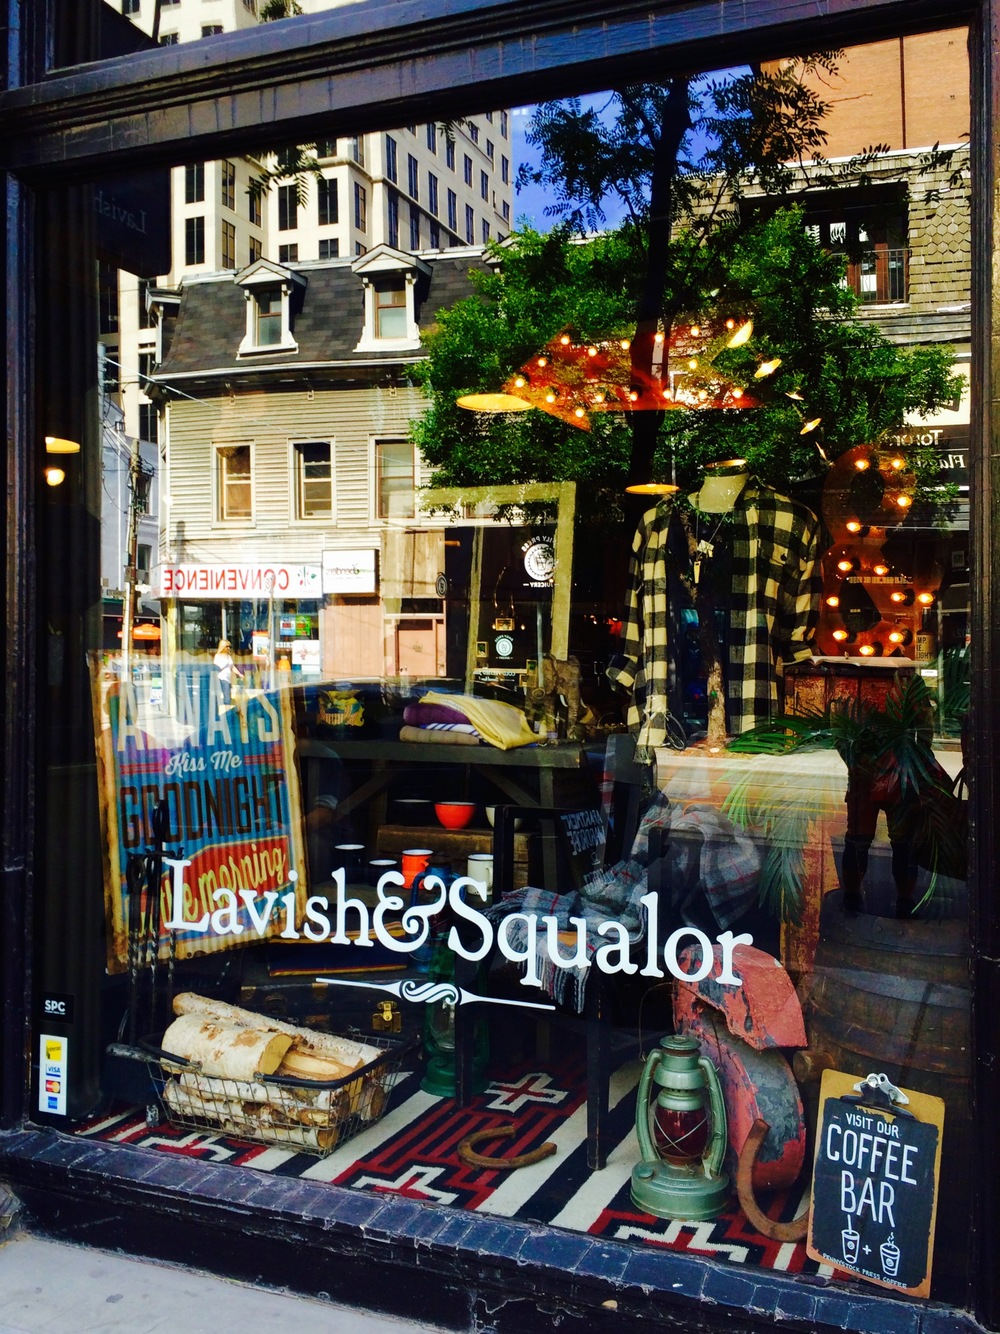 Lavish & Squalor Shop, Toronto Canada - 3 Days*